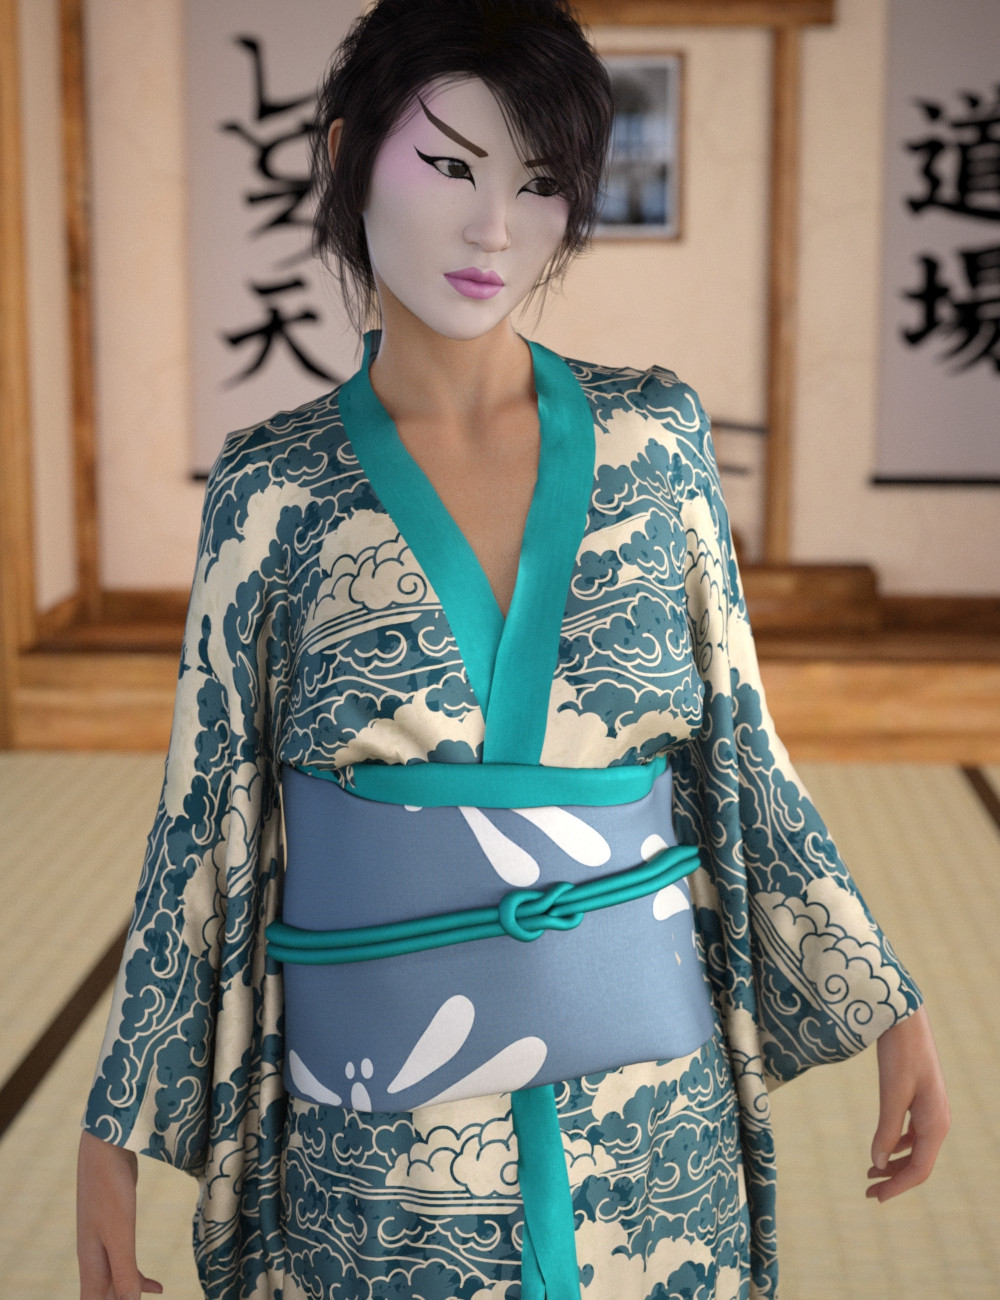 Japanese woman in traditional makeup wearing a green silk kimono with cloud pattern and standing in a traditional japanese room